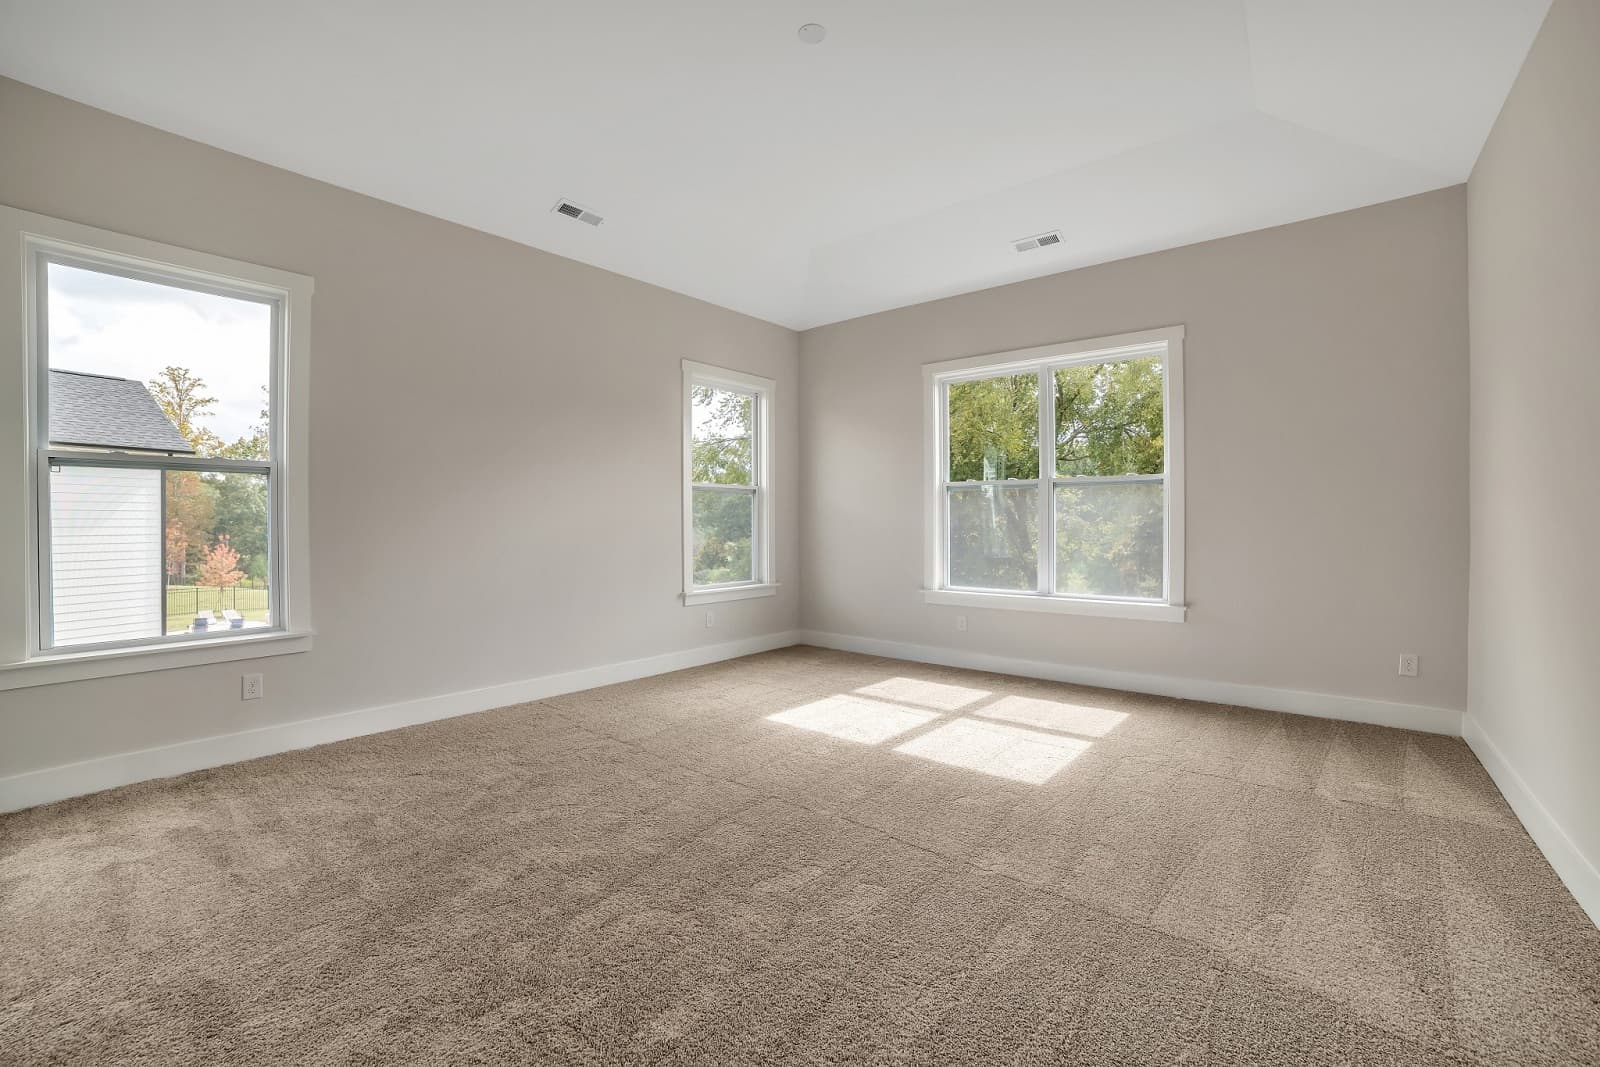 Real Estate Photography in Huntersville - NC - USA - Bedroom View